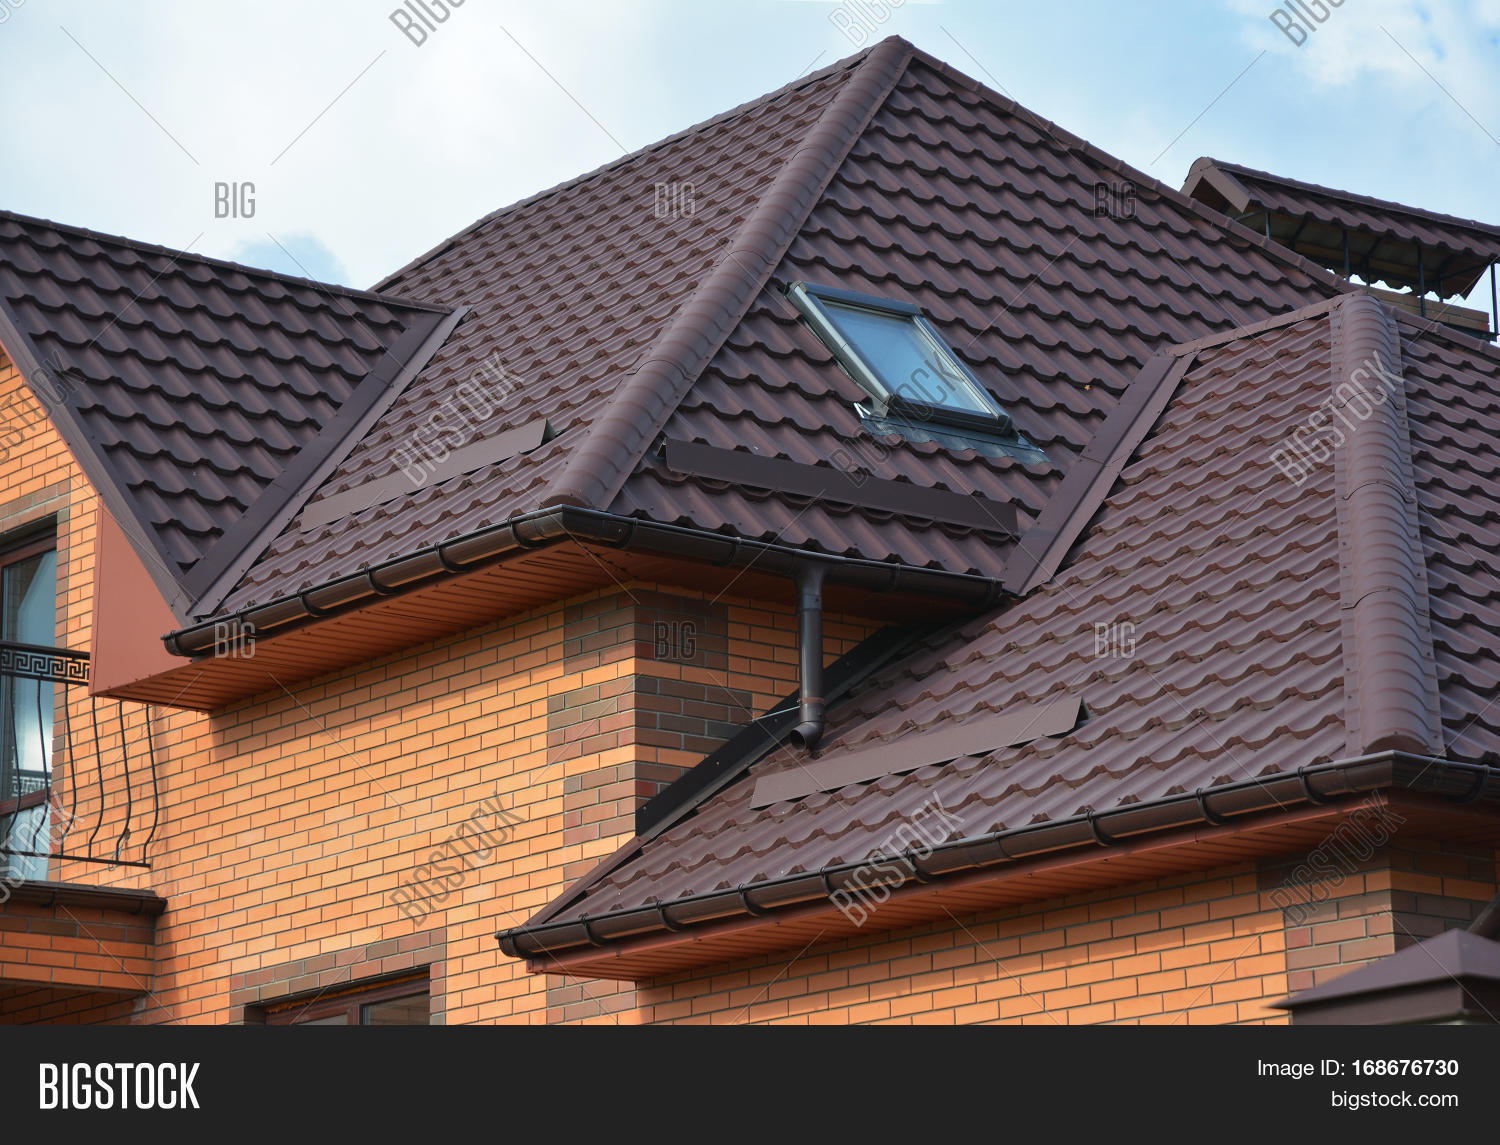 New Roofing Construction With Attic Skylights Rain Gutter System Roof  Windows And Roof Protection From Snow